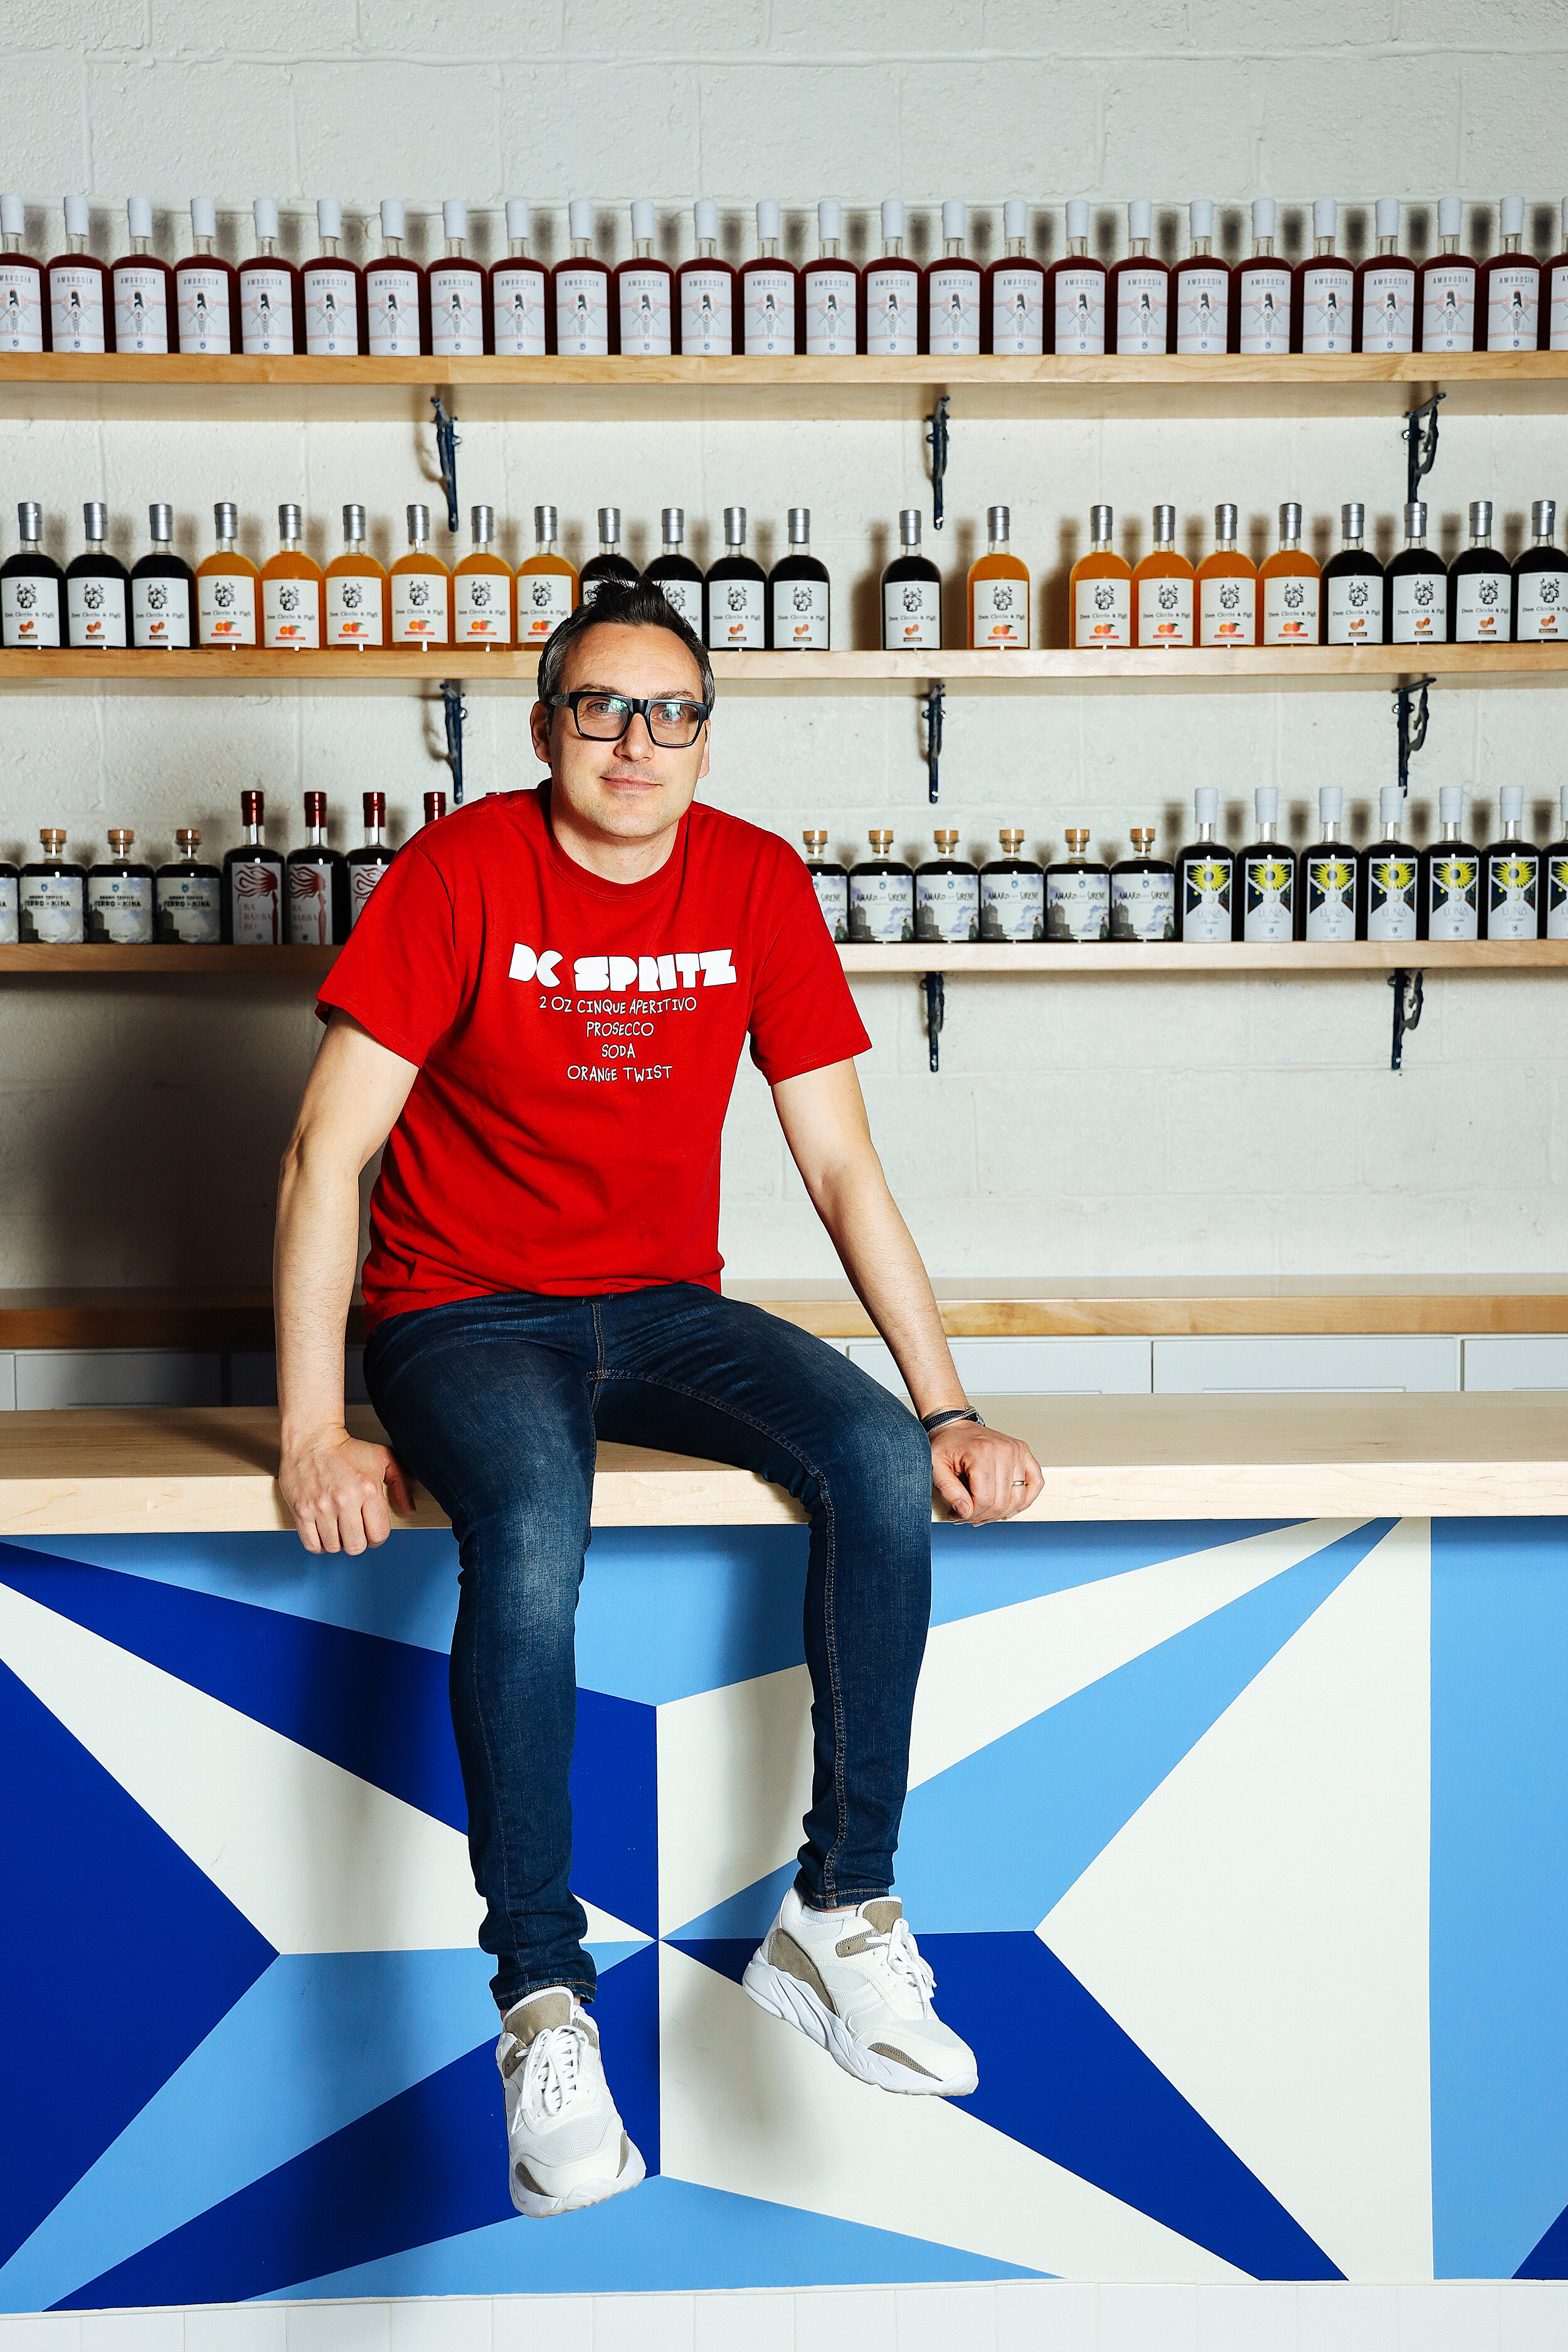 Amodeo on his tasting bar, his locally produced product behind him.